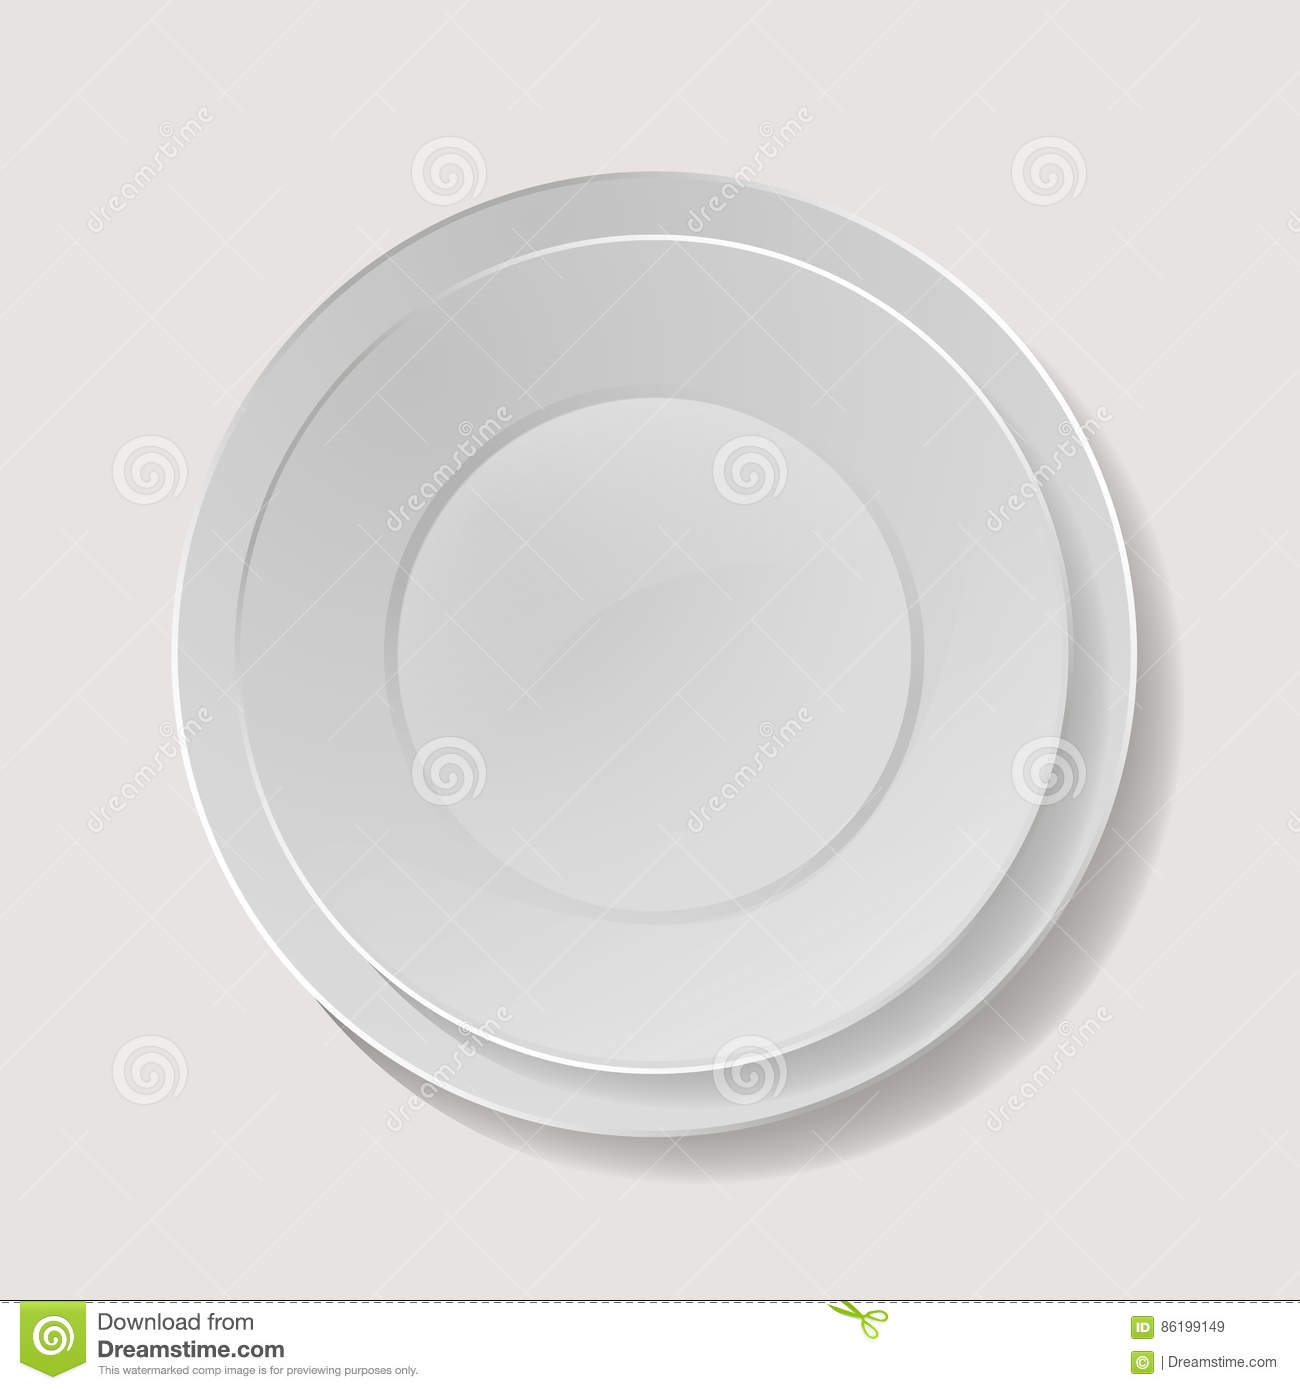 Plate With Food Top View Realistic Plate Vector Closeup Porcelain Mock Up